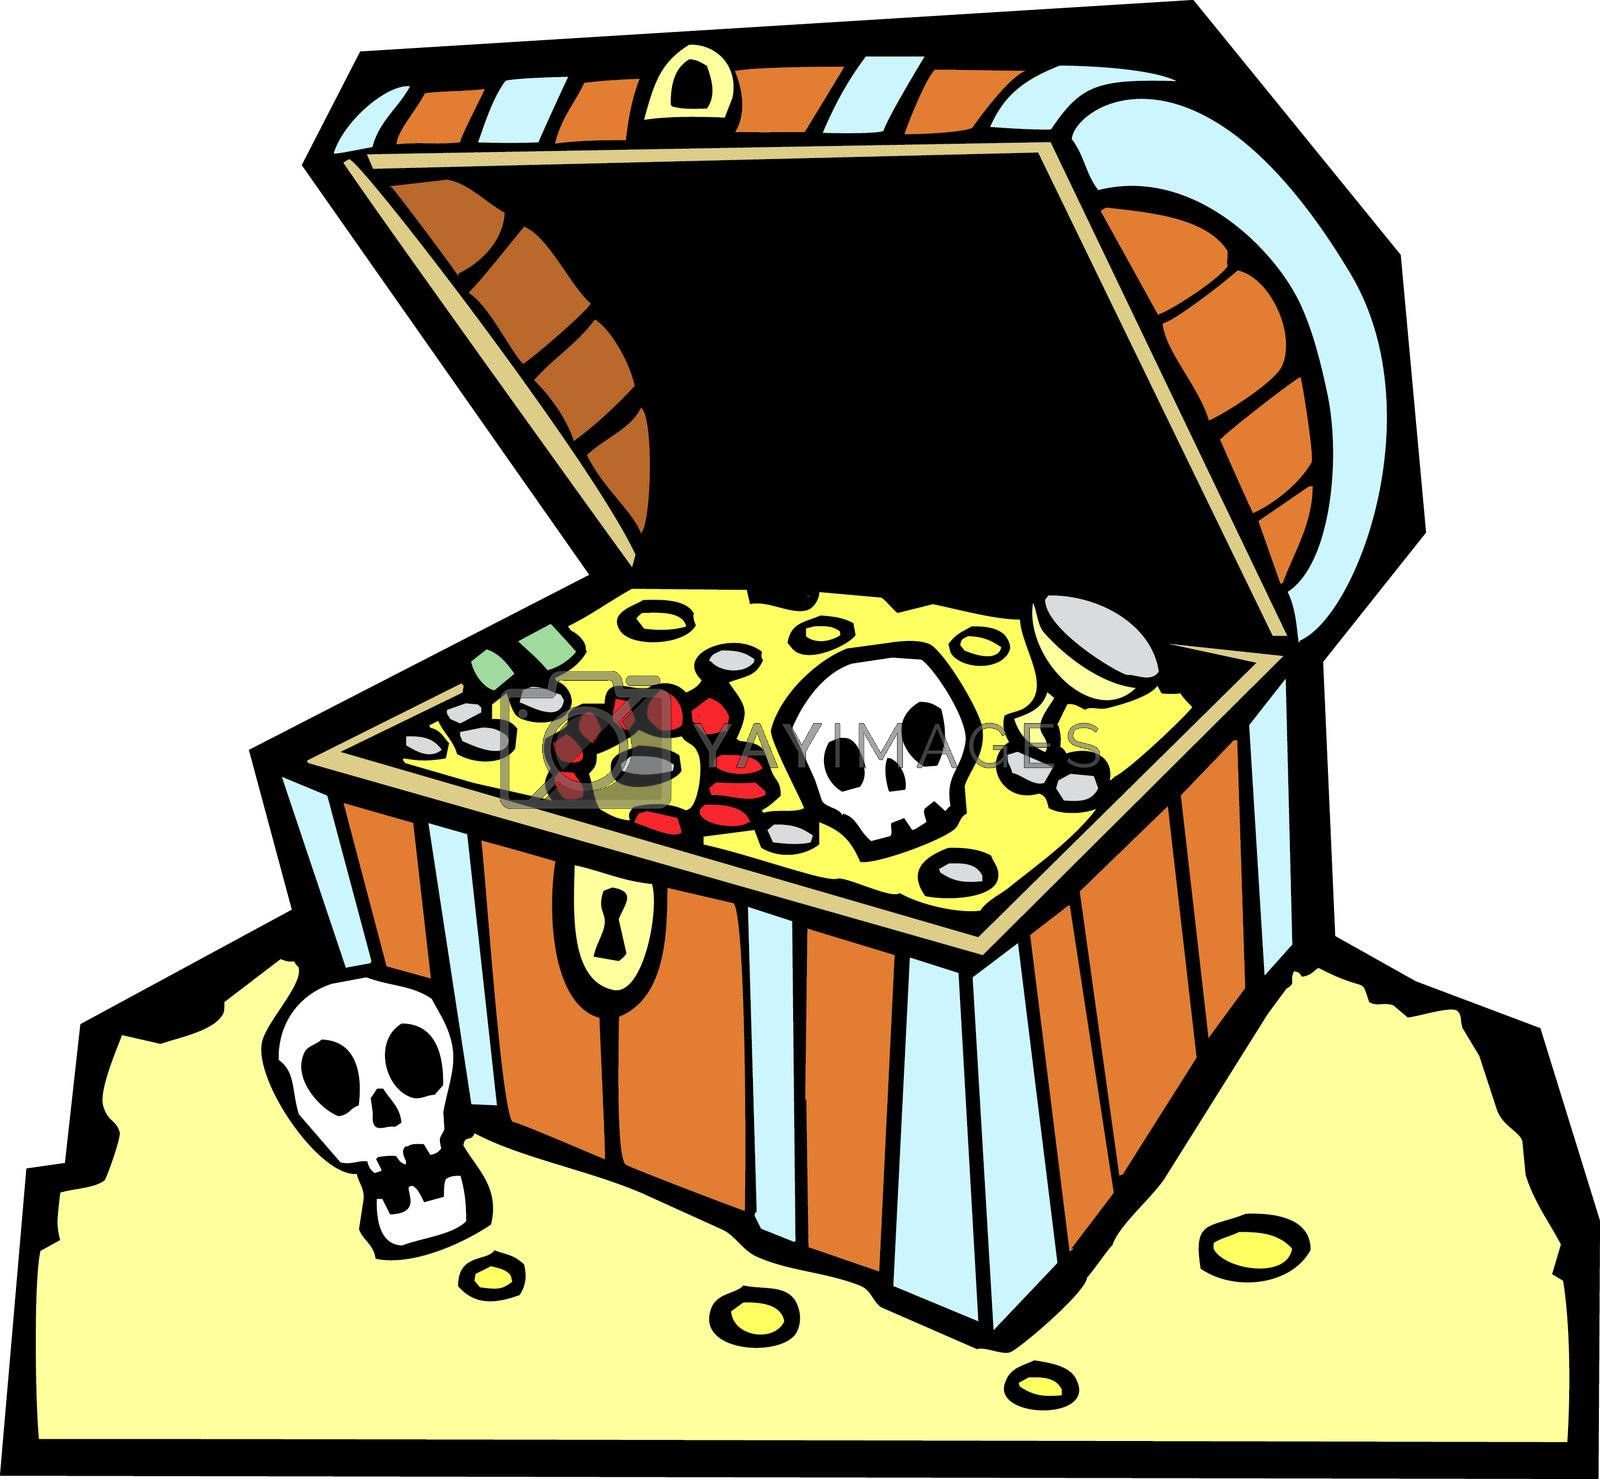 Pirate treasure chest with gold coins and skulls.